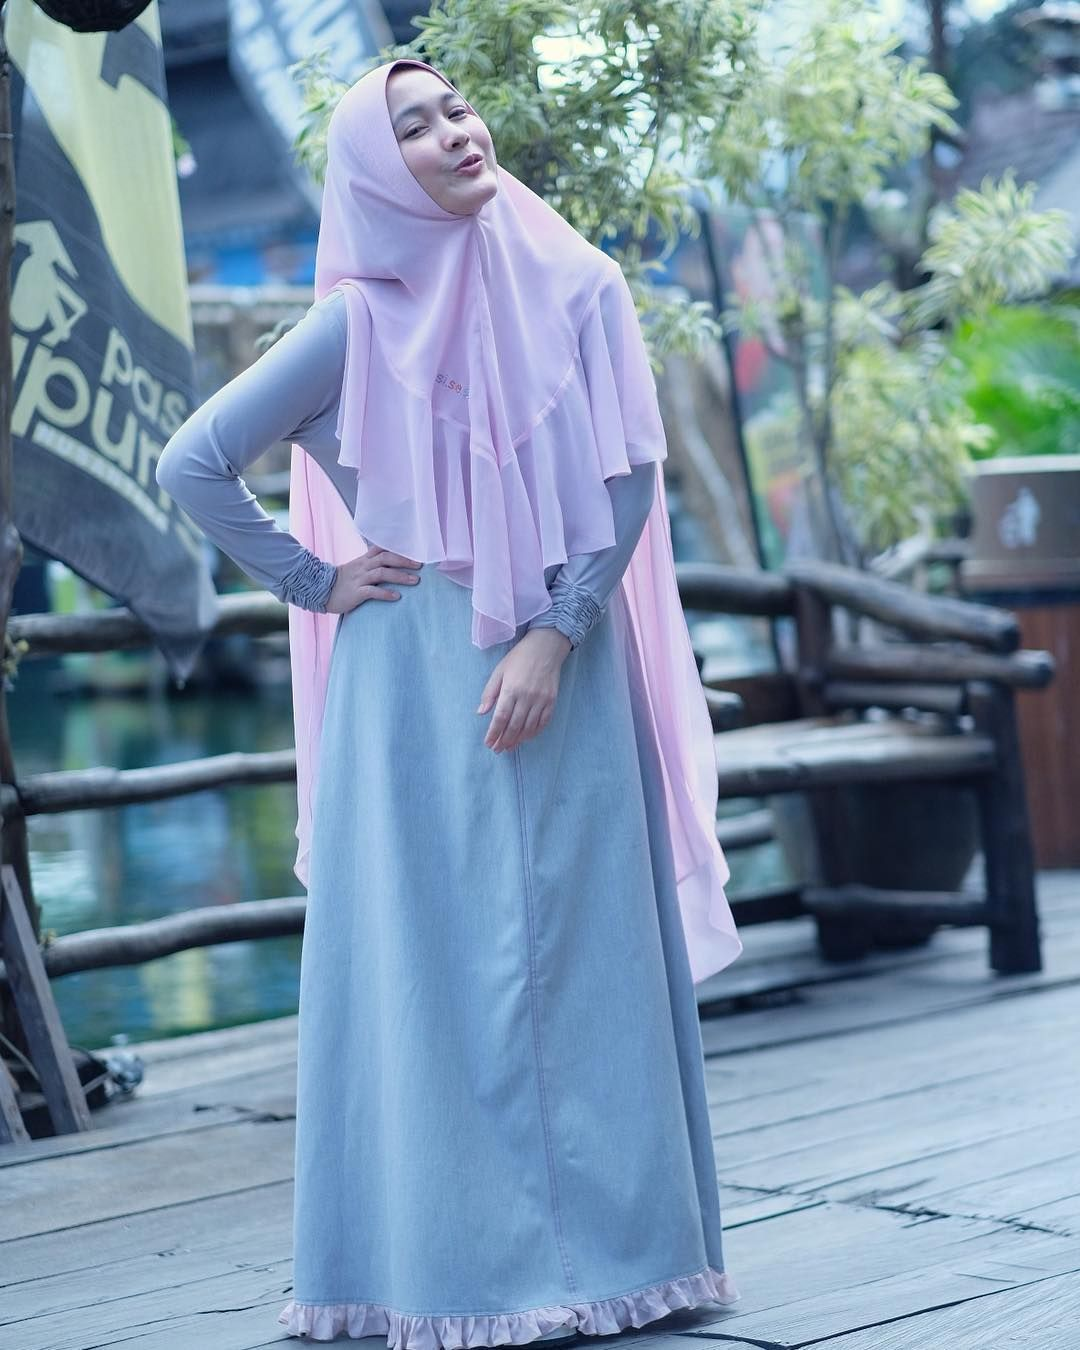 473 Likes, 20 Comments - Authorized Reseller SISESA (@rikhe_lind) on ...